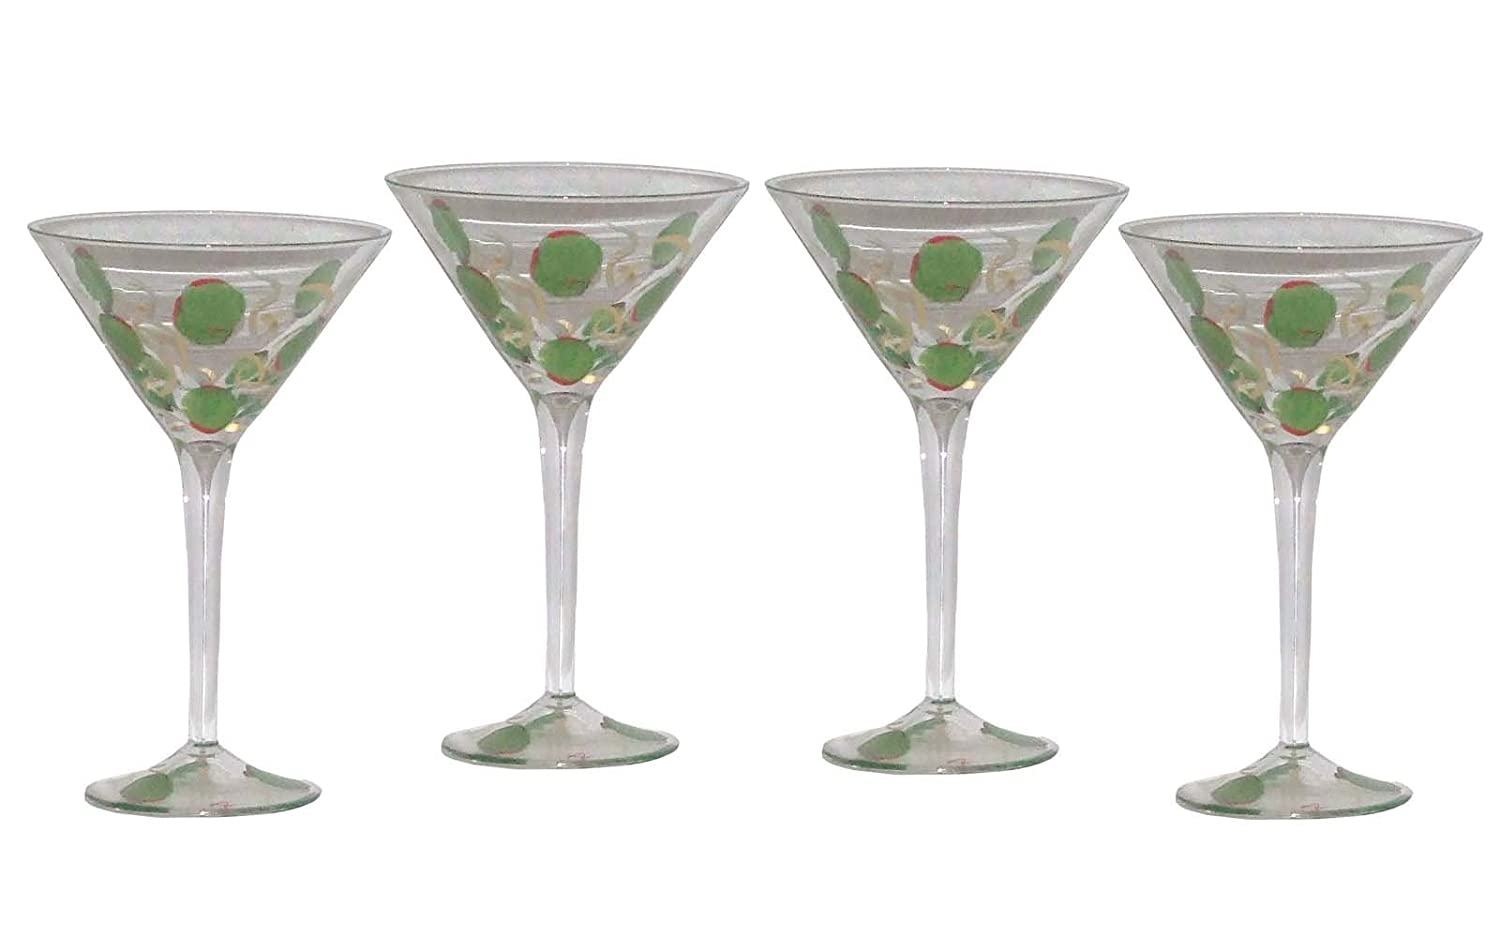 Amazoncom Artisanstreets Hand Painted Martini Glasses With Green